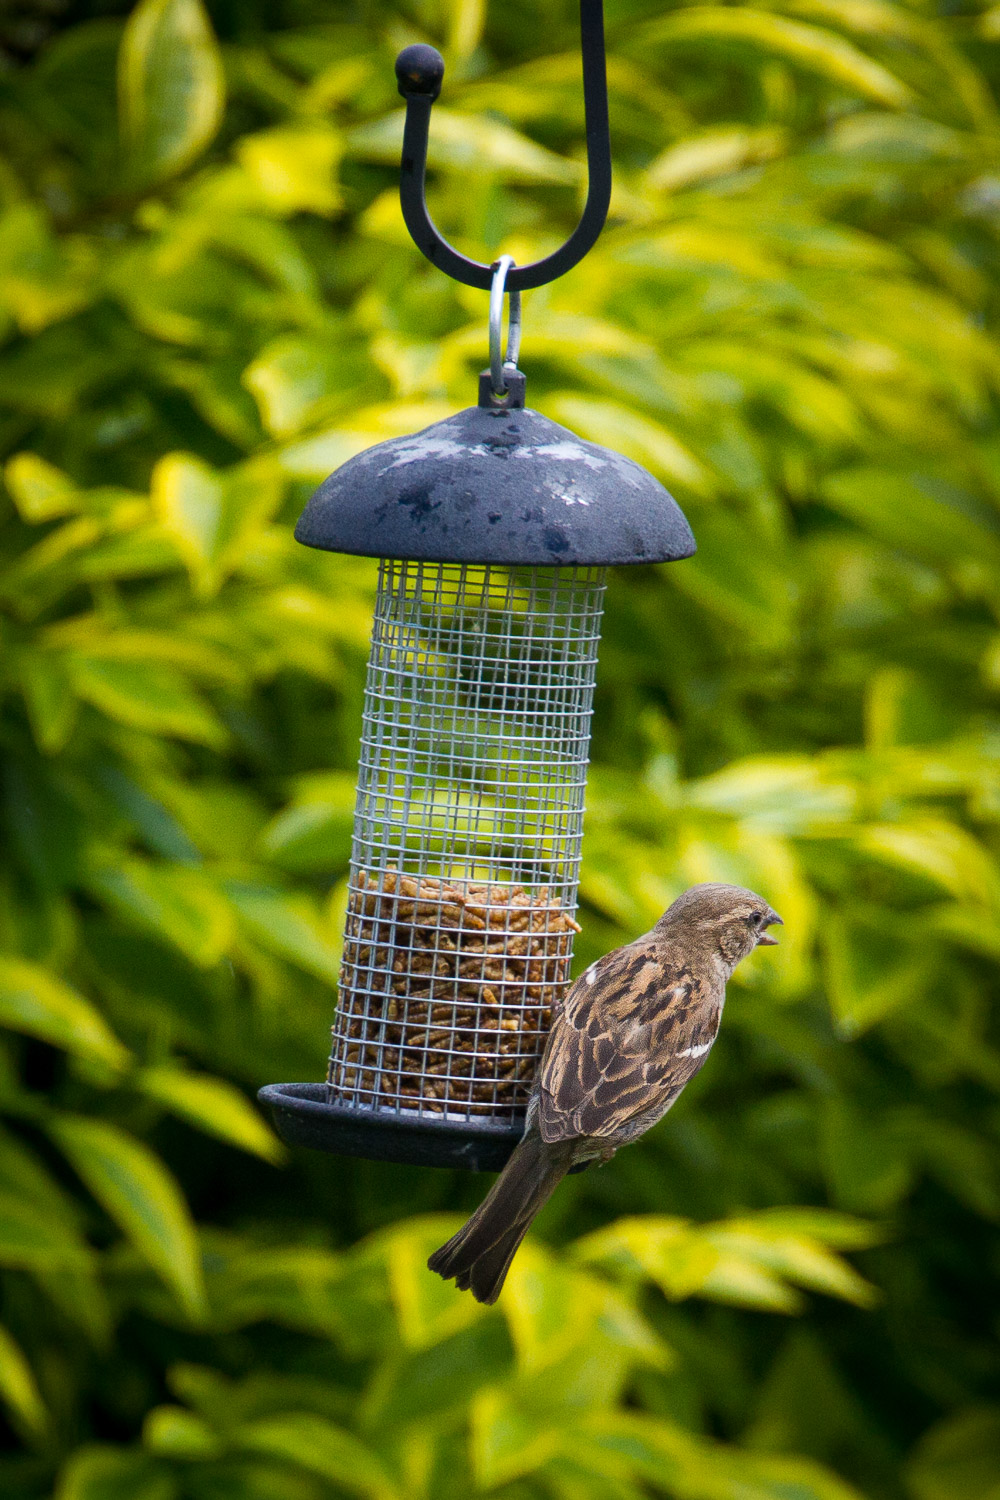 A Photograph Showing A Garden Bird On A Bird Feeder Filled With Mealworm In Gloucestershire, England.